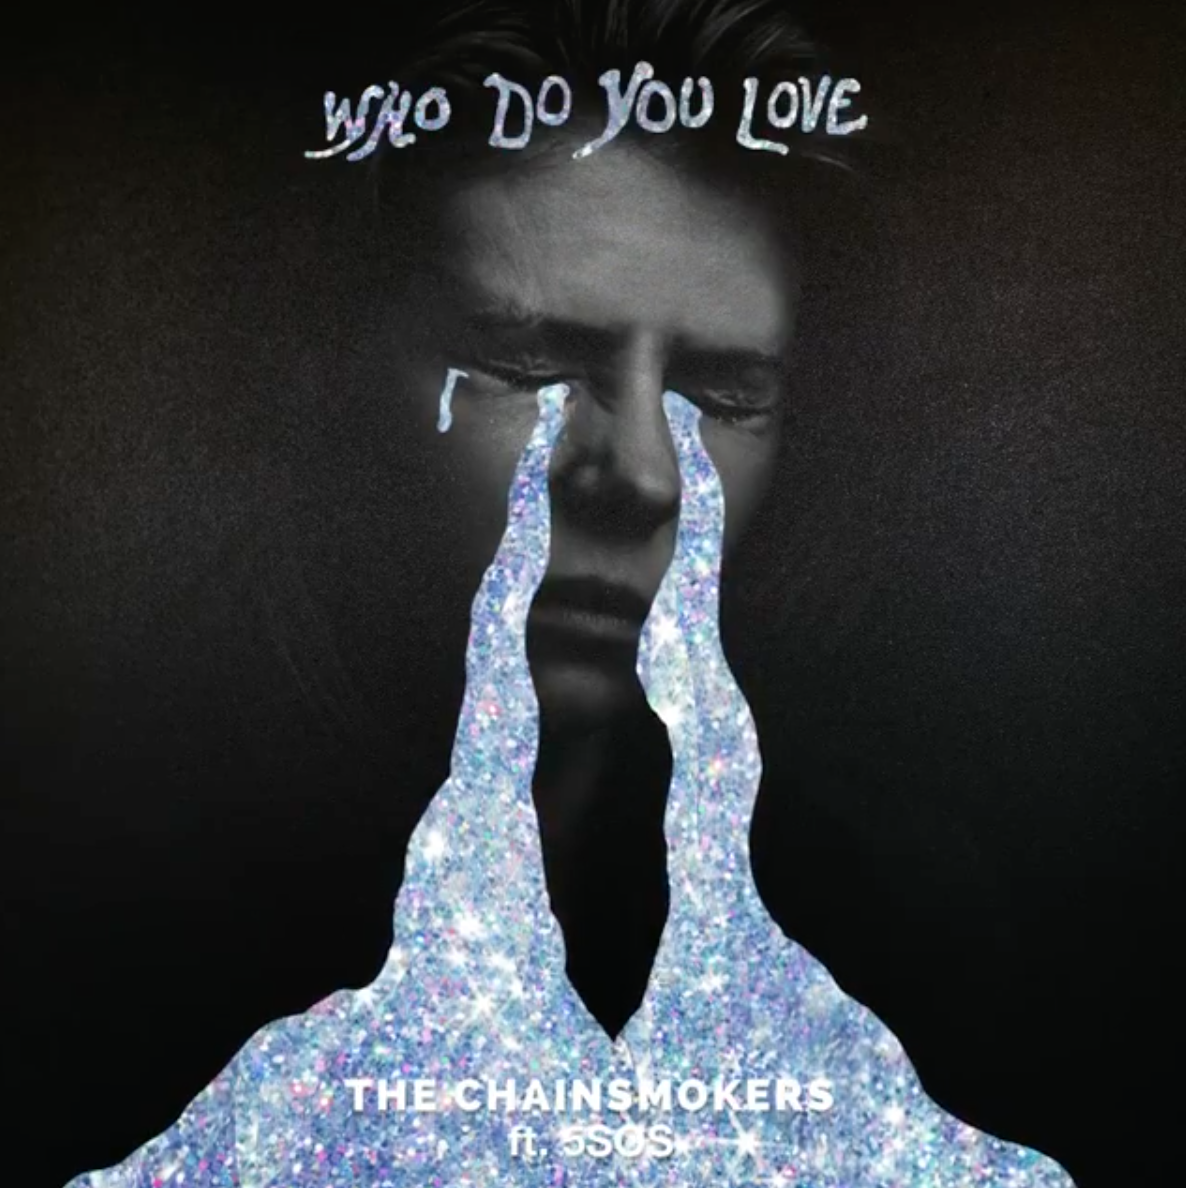 Who Do You Love': A 5SOS/Chainsmokers collab — The Daily Campus